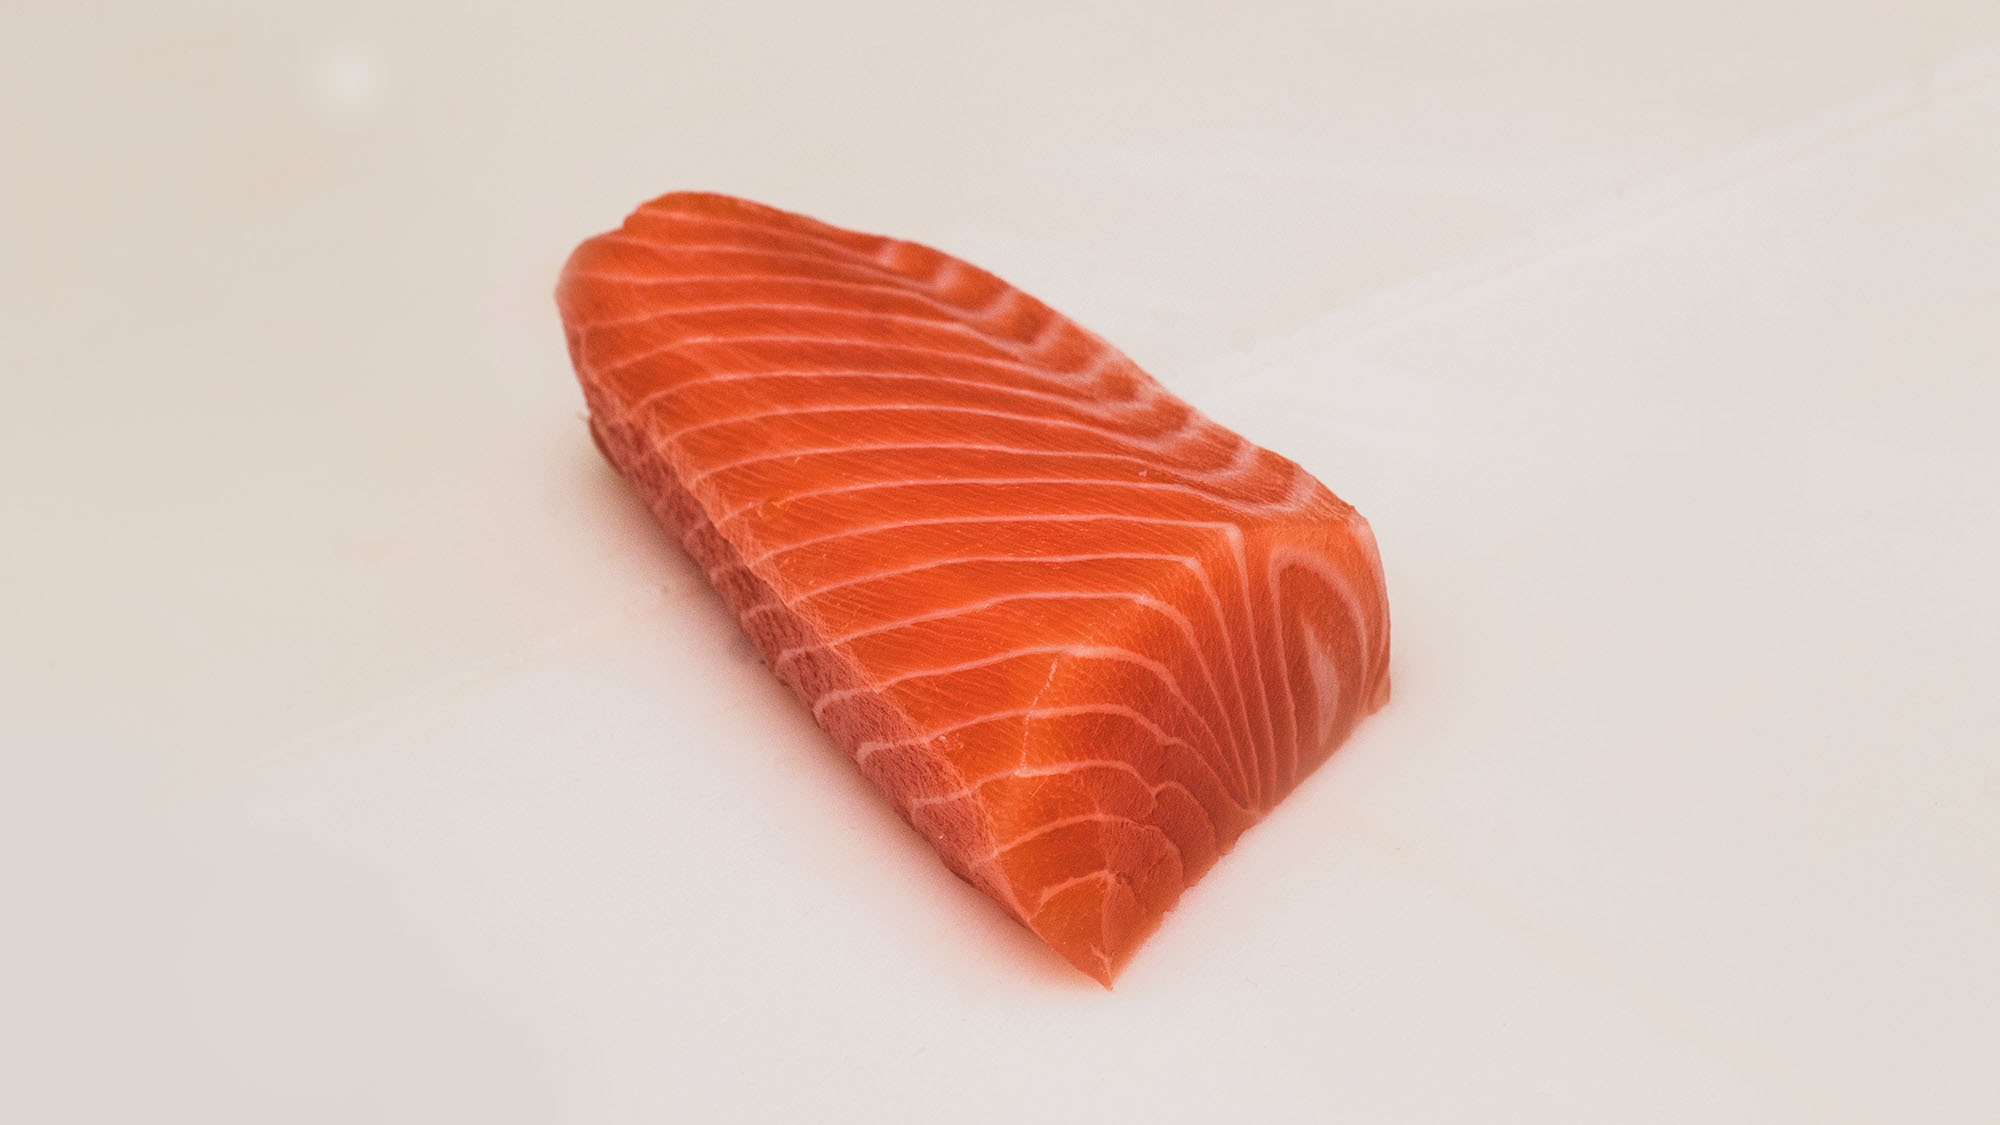 Why is Salmon So Expensive